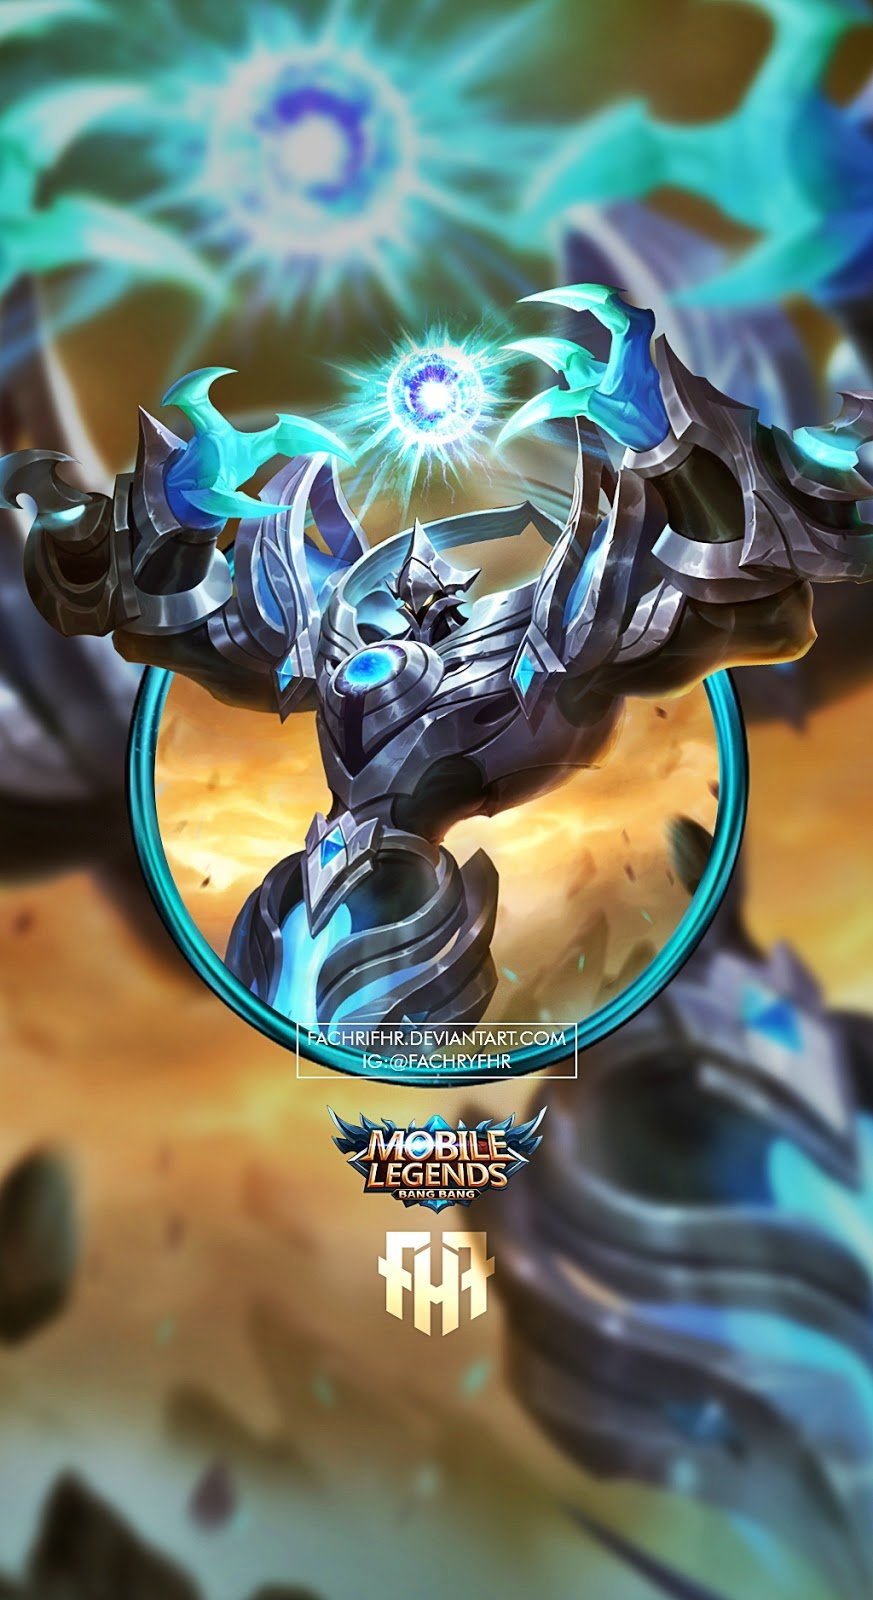 Wallpaper Uranus Mobile Legends